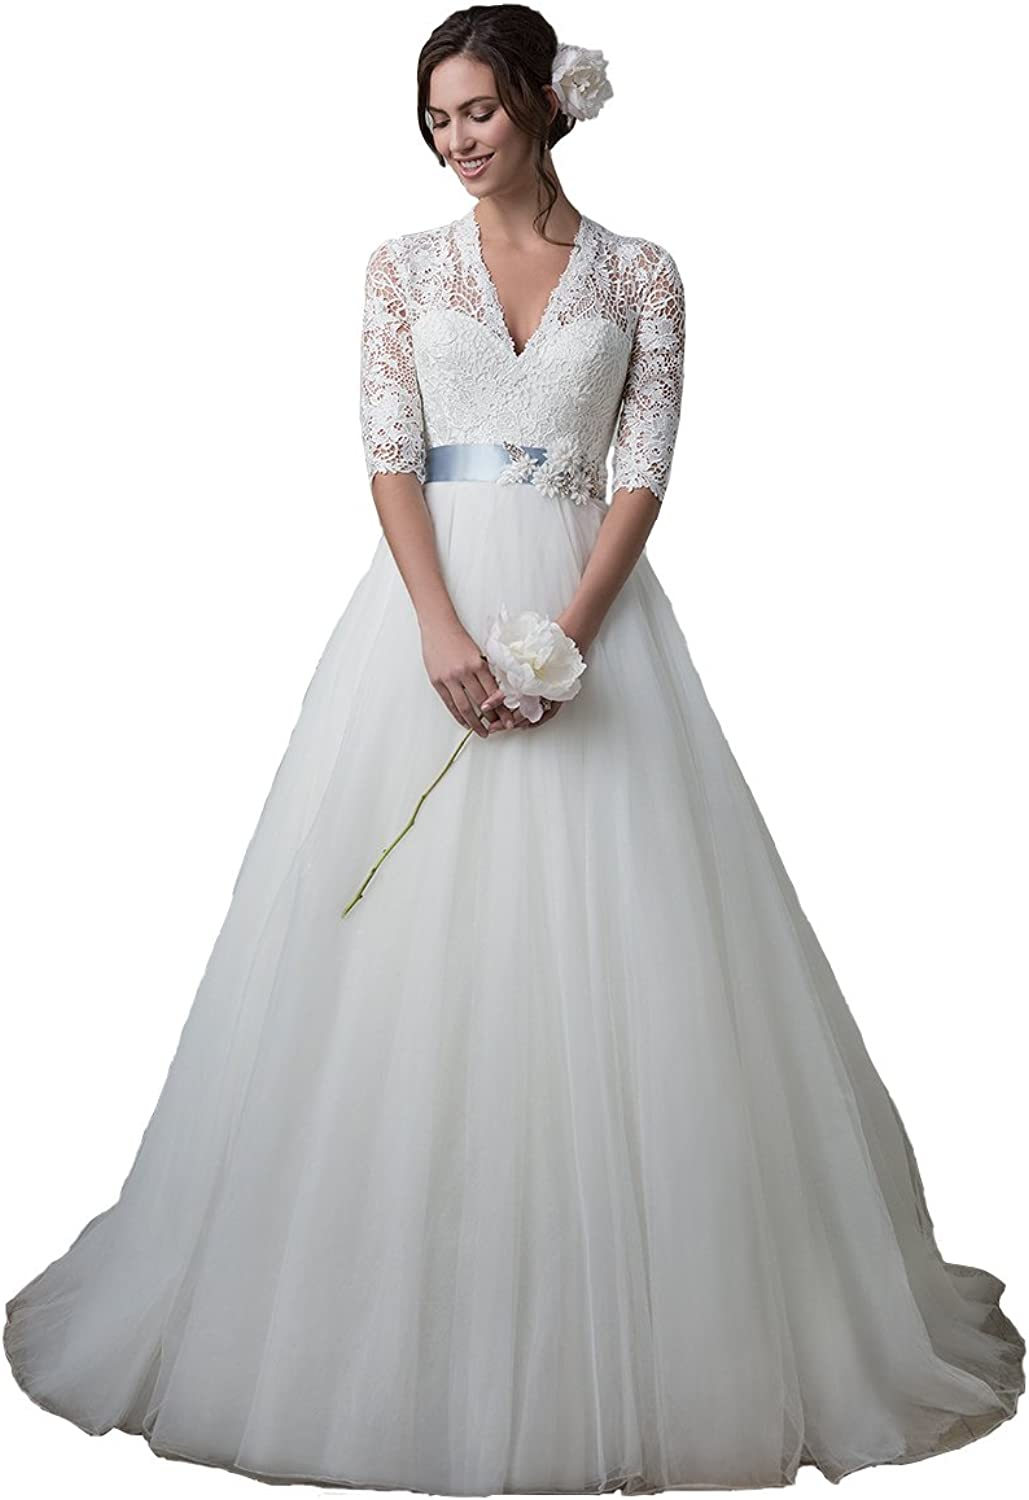 Irenwedding Women's V Neck Applique Lace Half Sleeve Flower A Line Wedding Dress